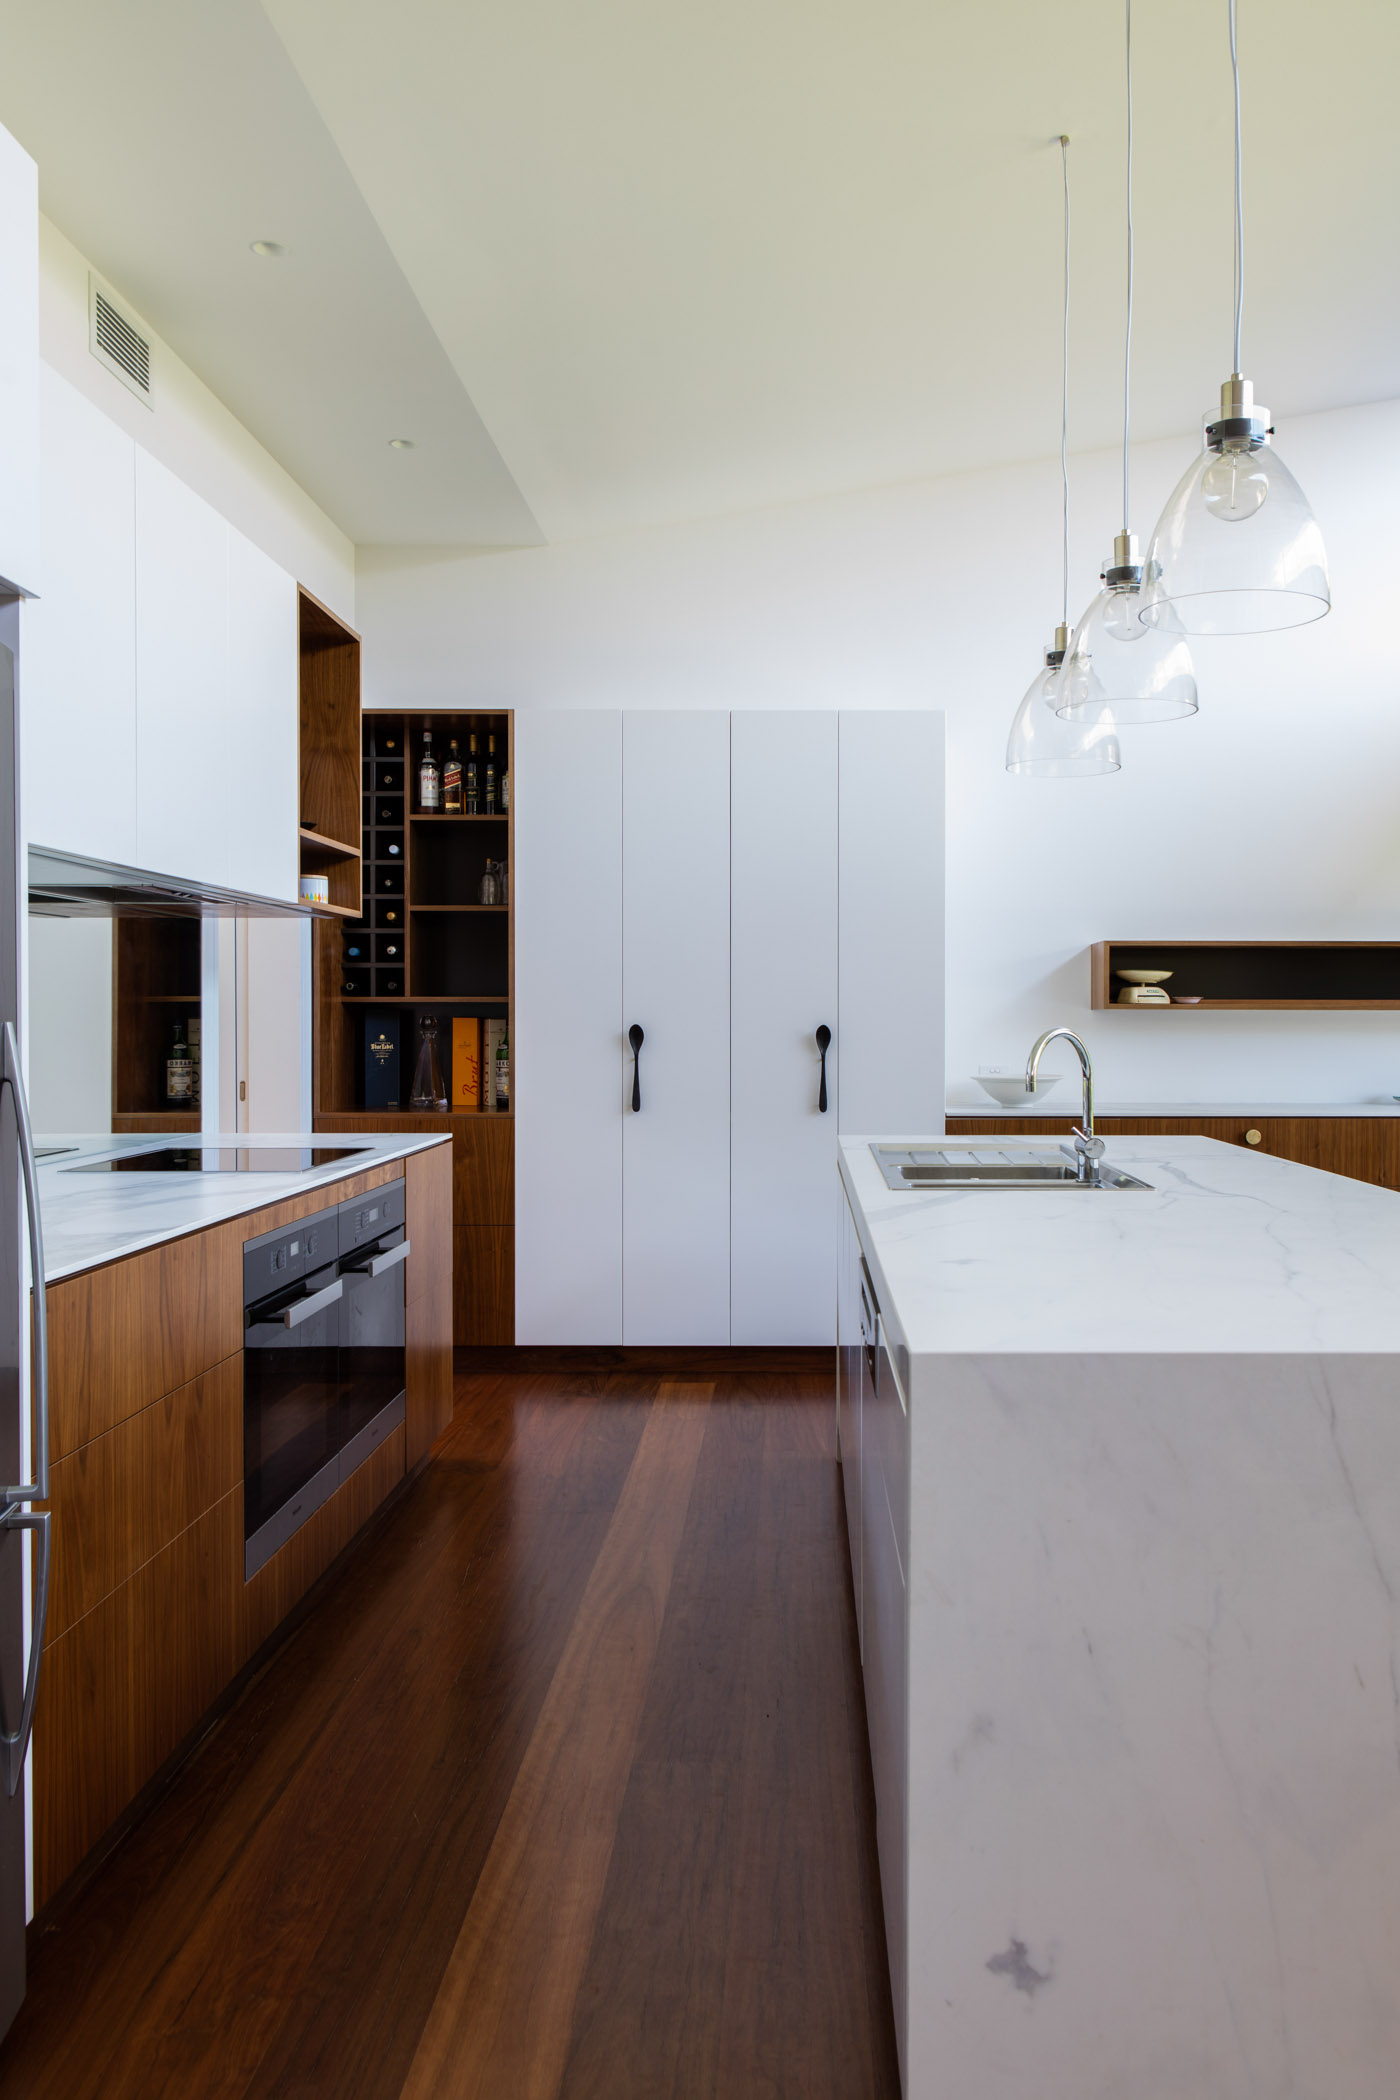 Roseville House by Sydney residential architects Sam Crawford Architects. This modern, bespoke kitchen.